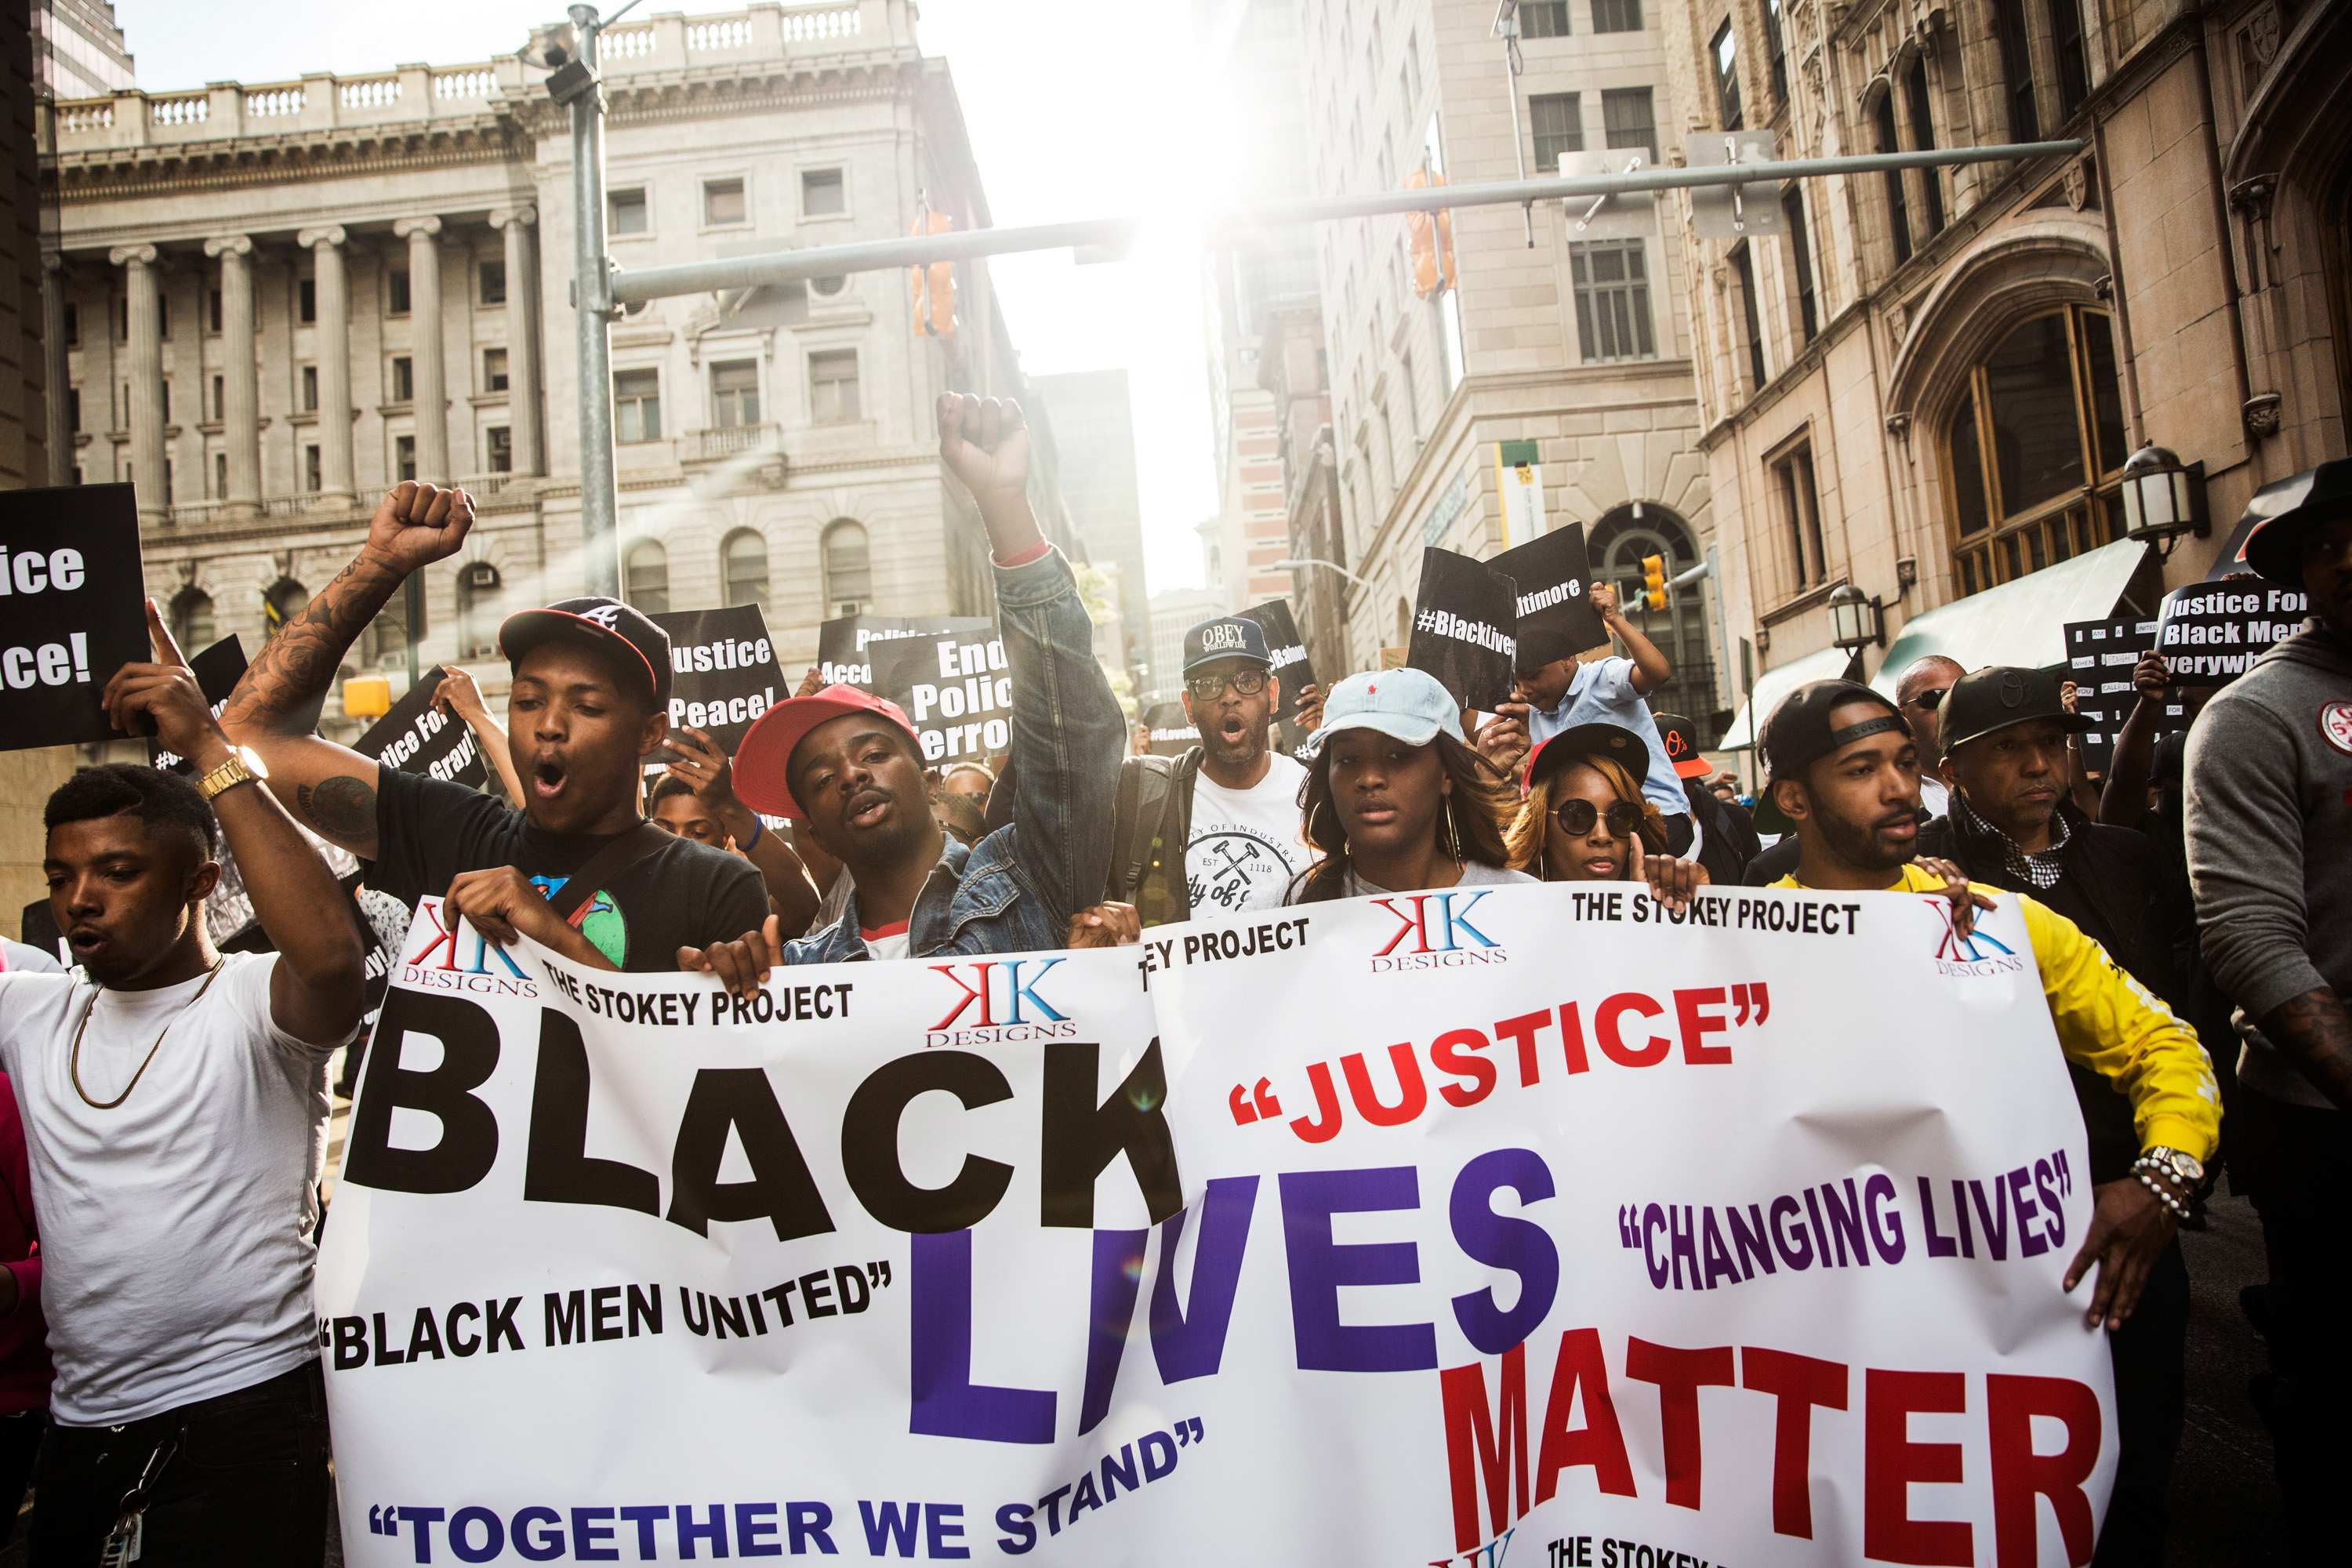 Americans are as skeptical of Black Lives Matter as they were of the civil rights movement